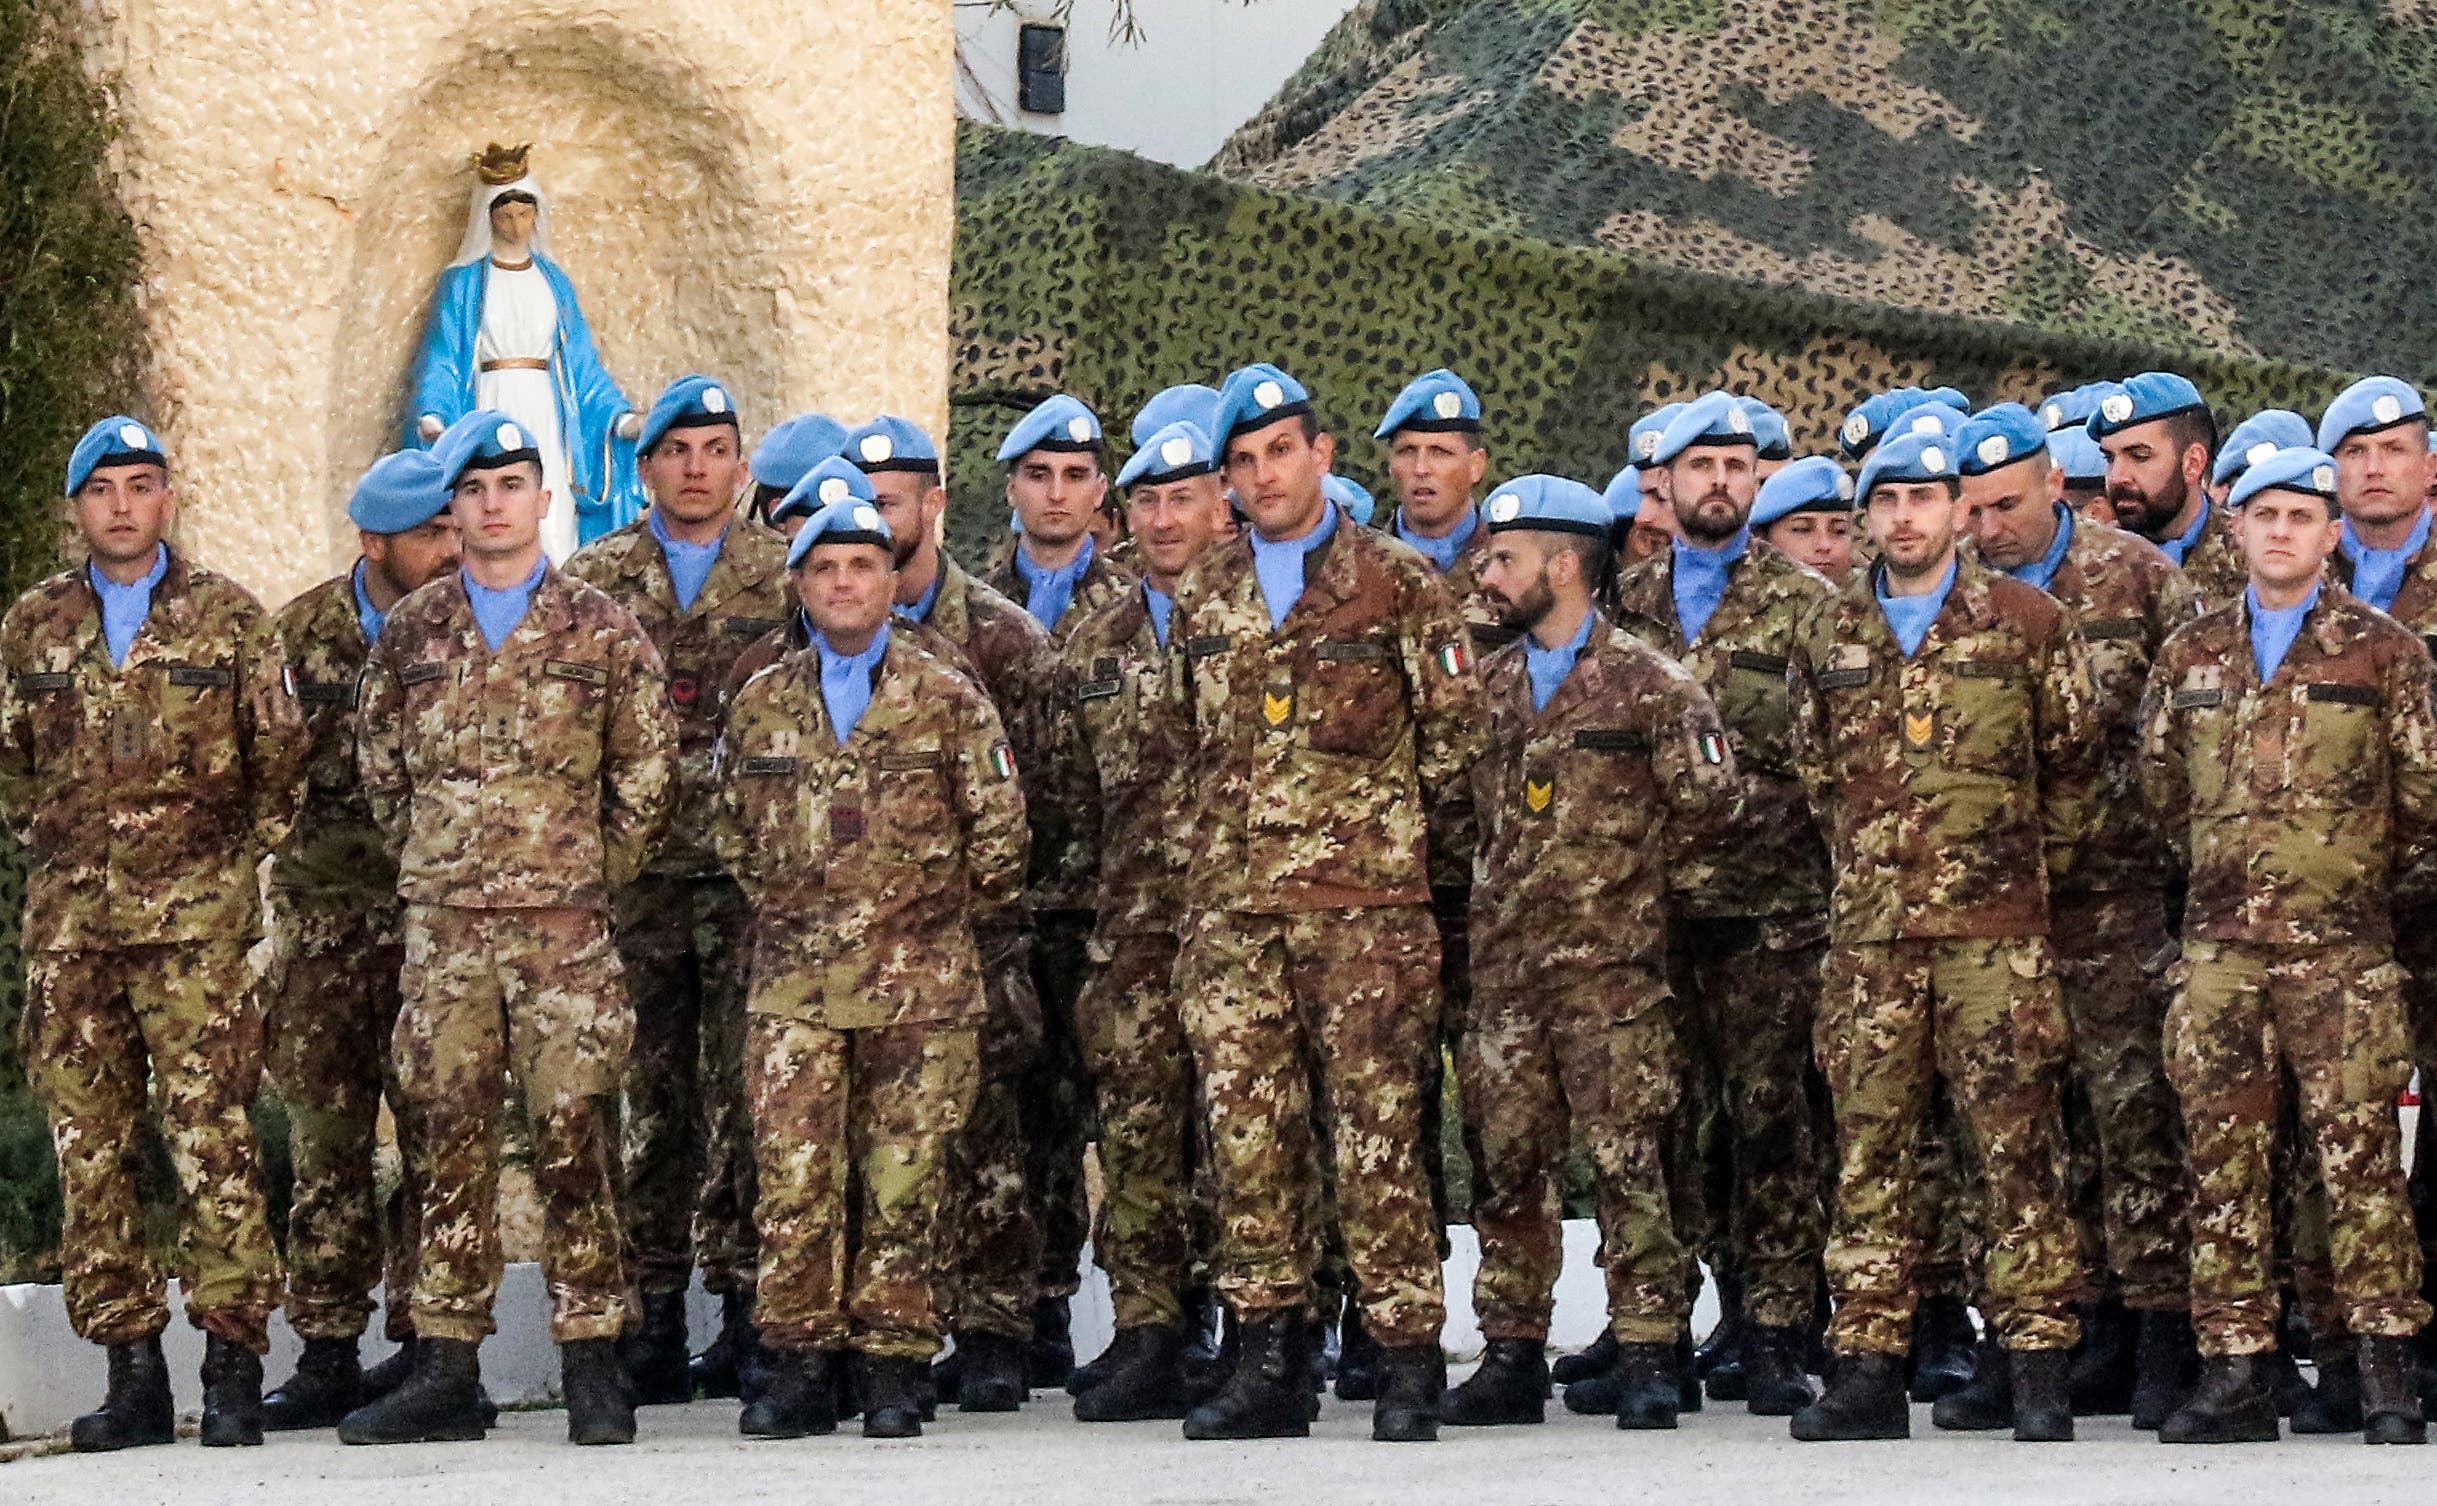 Italian members of (UNIFIL) stand on guard at the mission headquarters in south Lebanon. (File Photo: AFP)